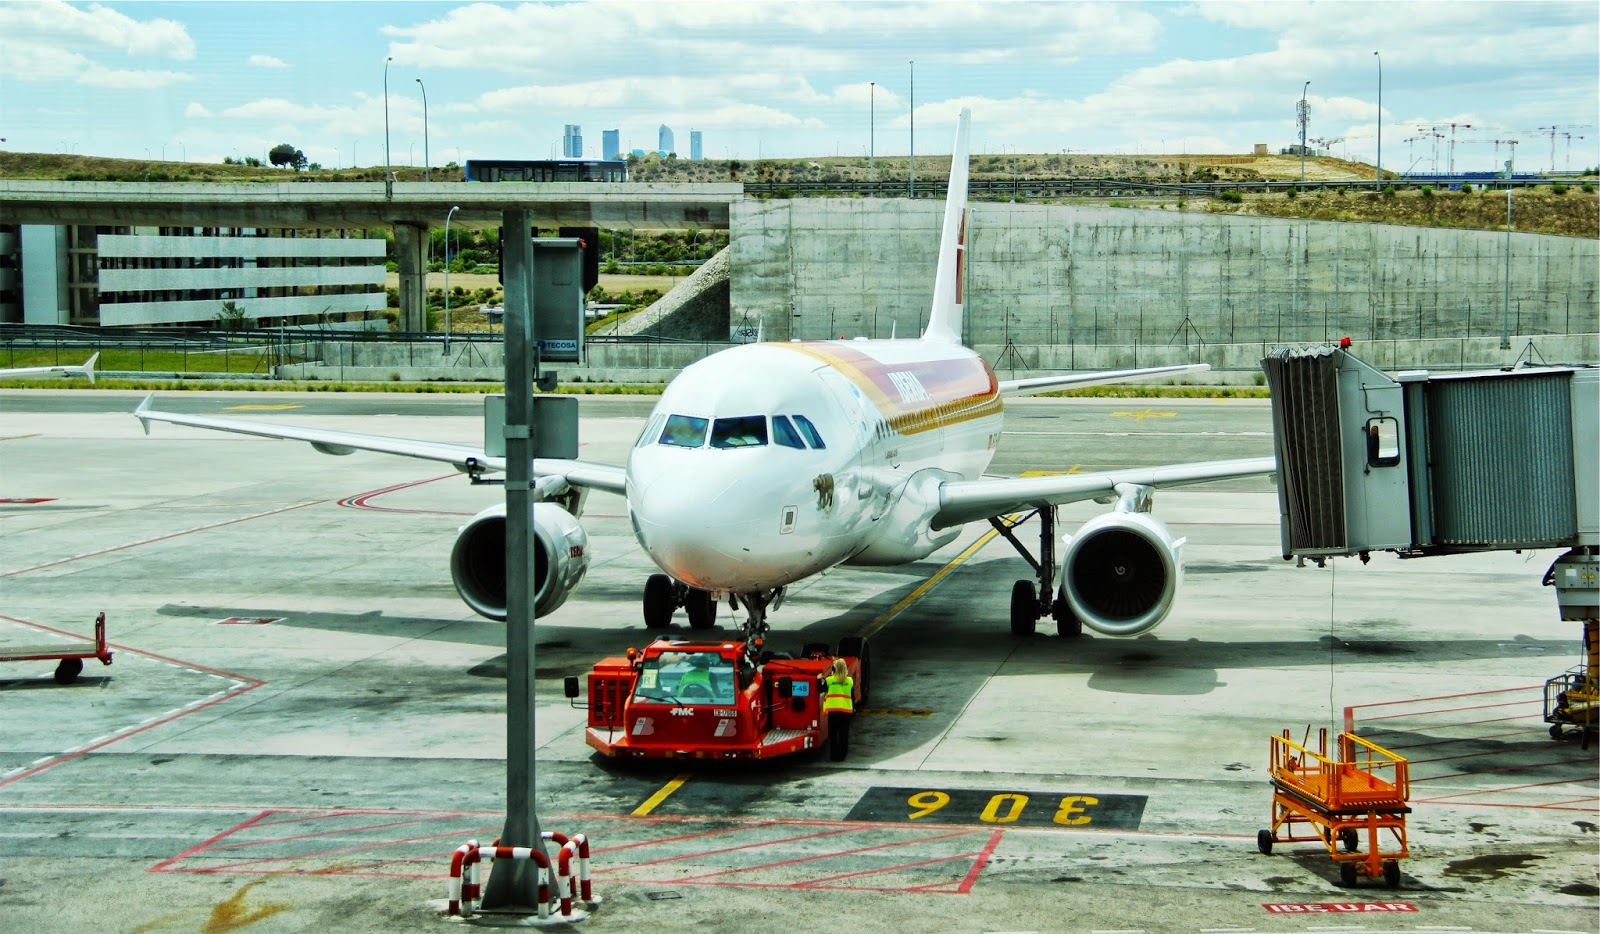 Life of a Geek: How to Become an Air Traffic Controller in